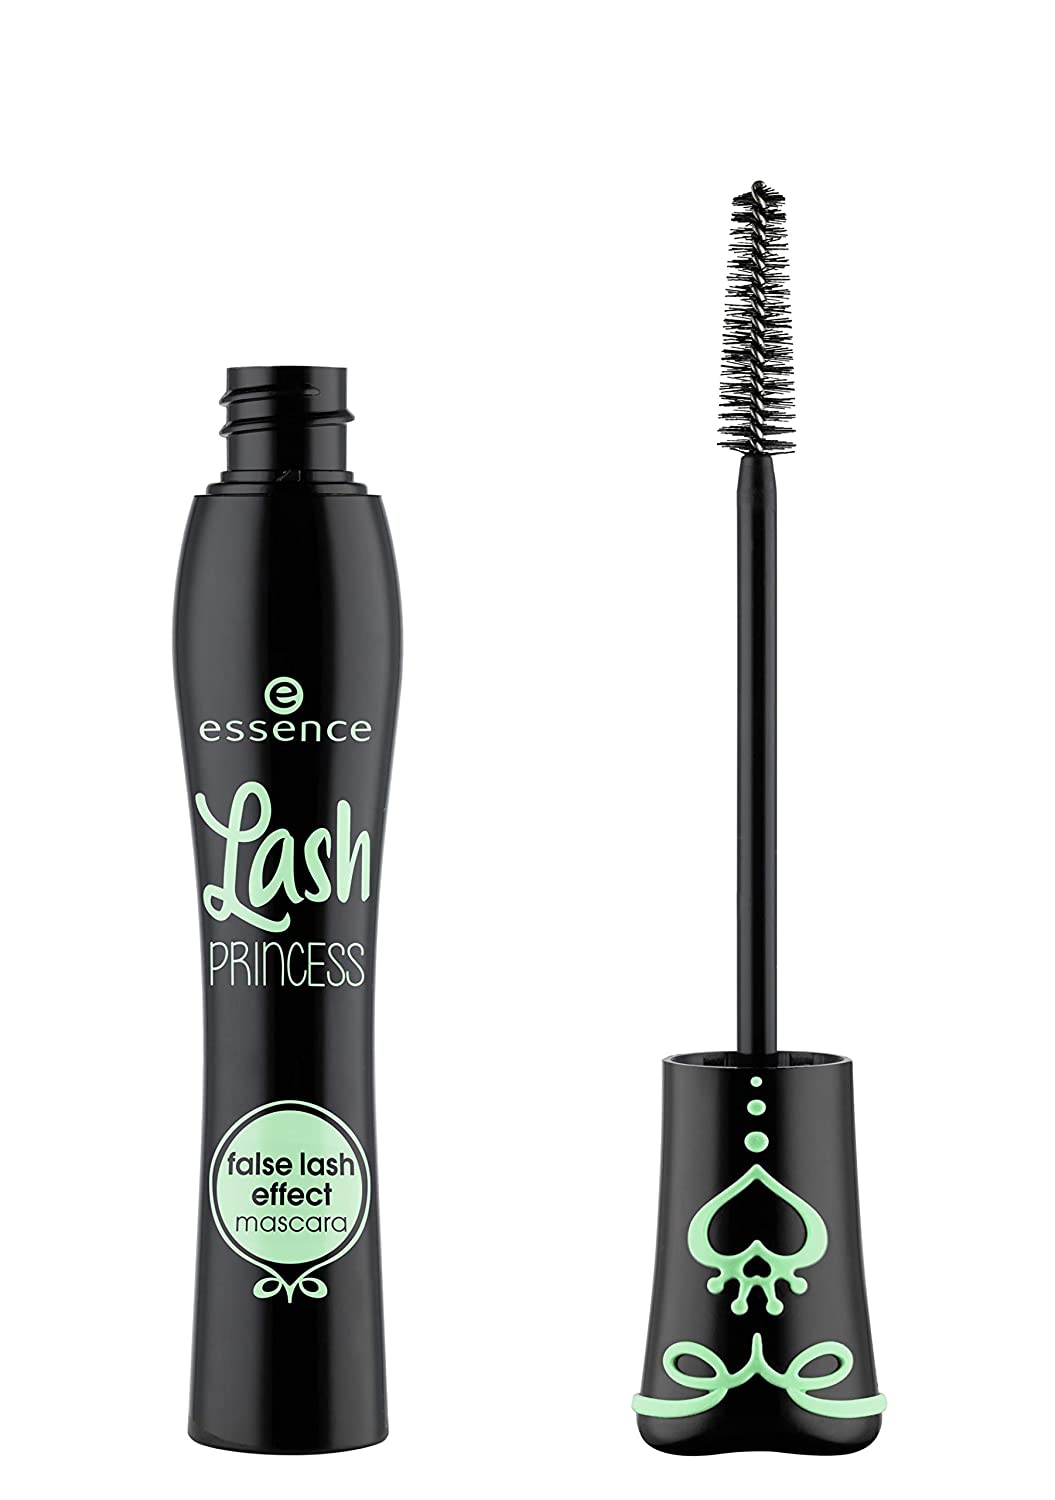 dded06108ba Amazon.com: essence | Lash Princess False Lash Effect Mascara | Gluten &  Cruelty Free: Beauty